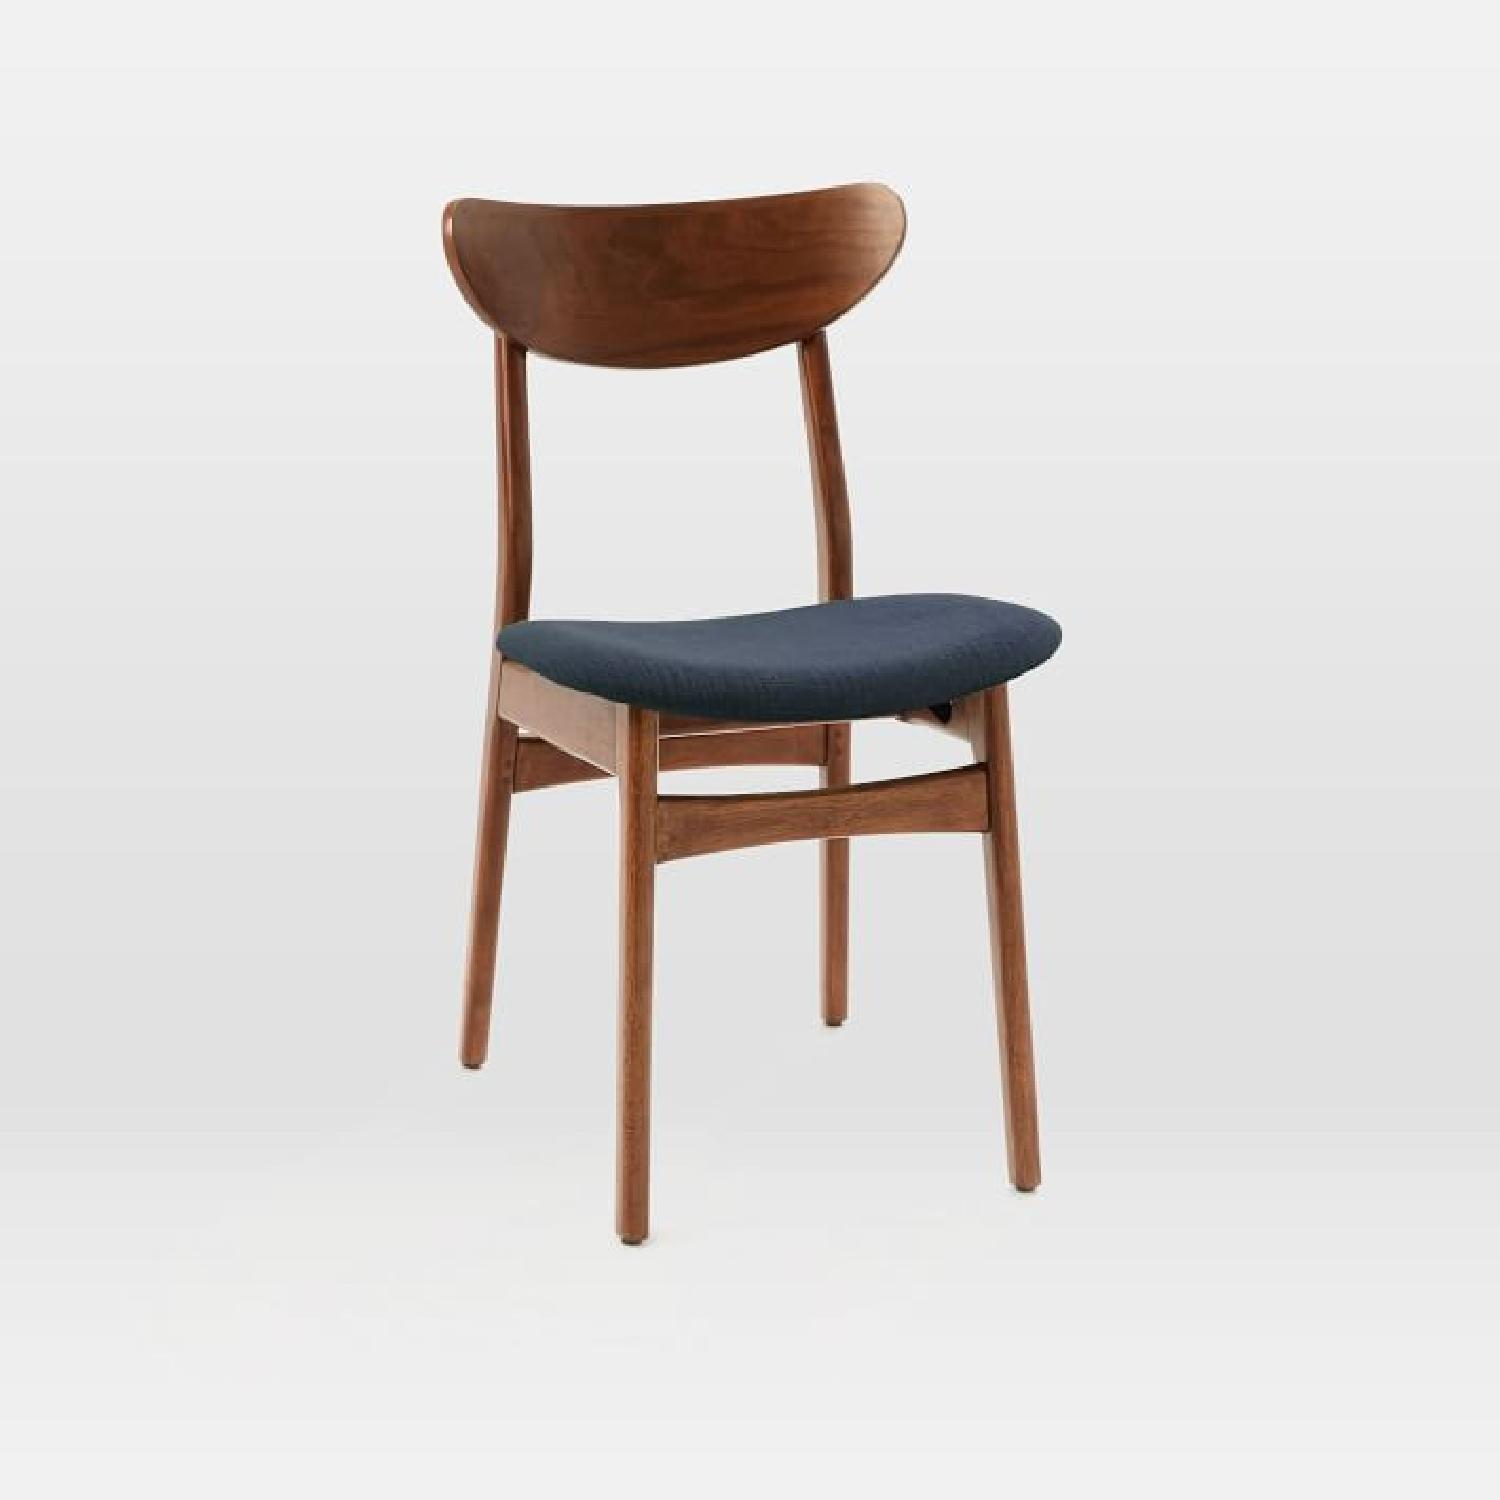 West Elm Classic Cafe Dining Chair in Nightshade - image-0